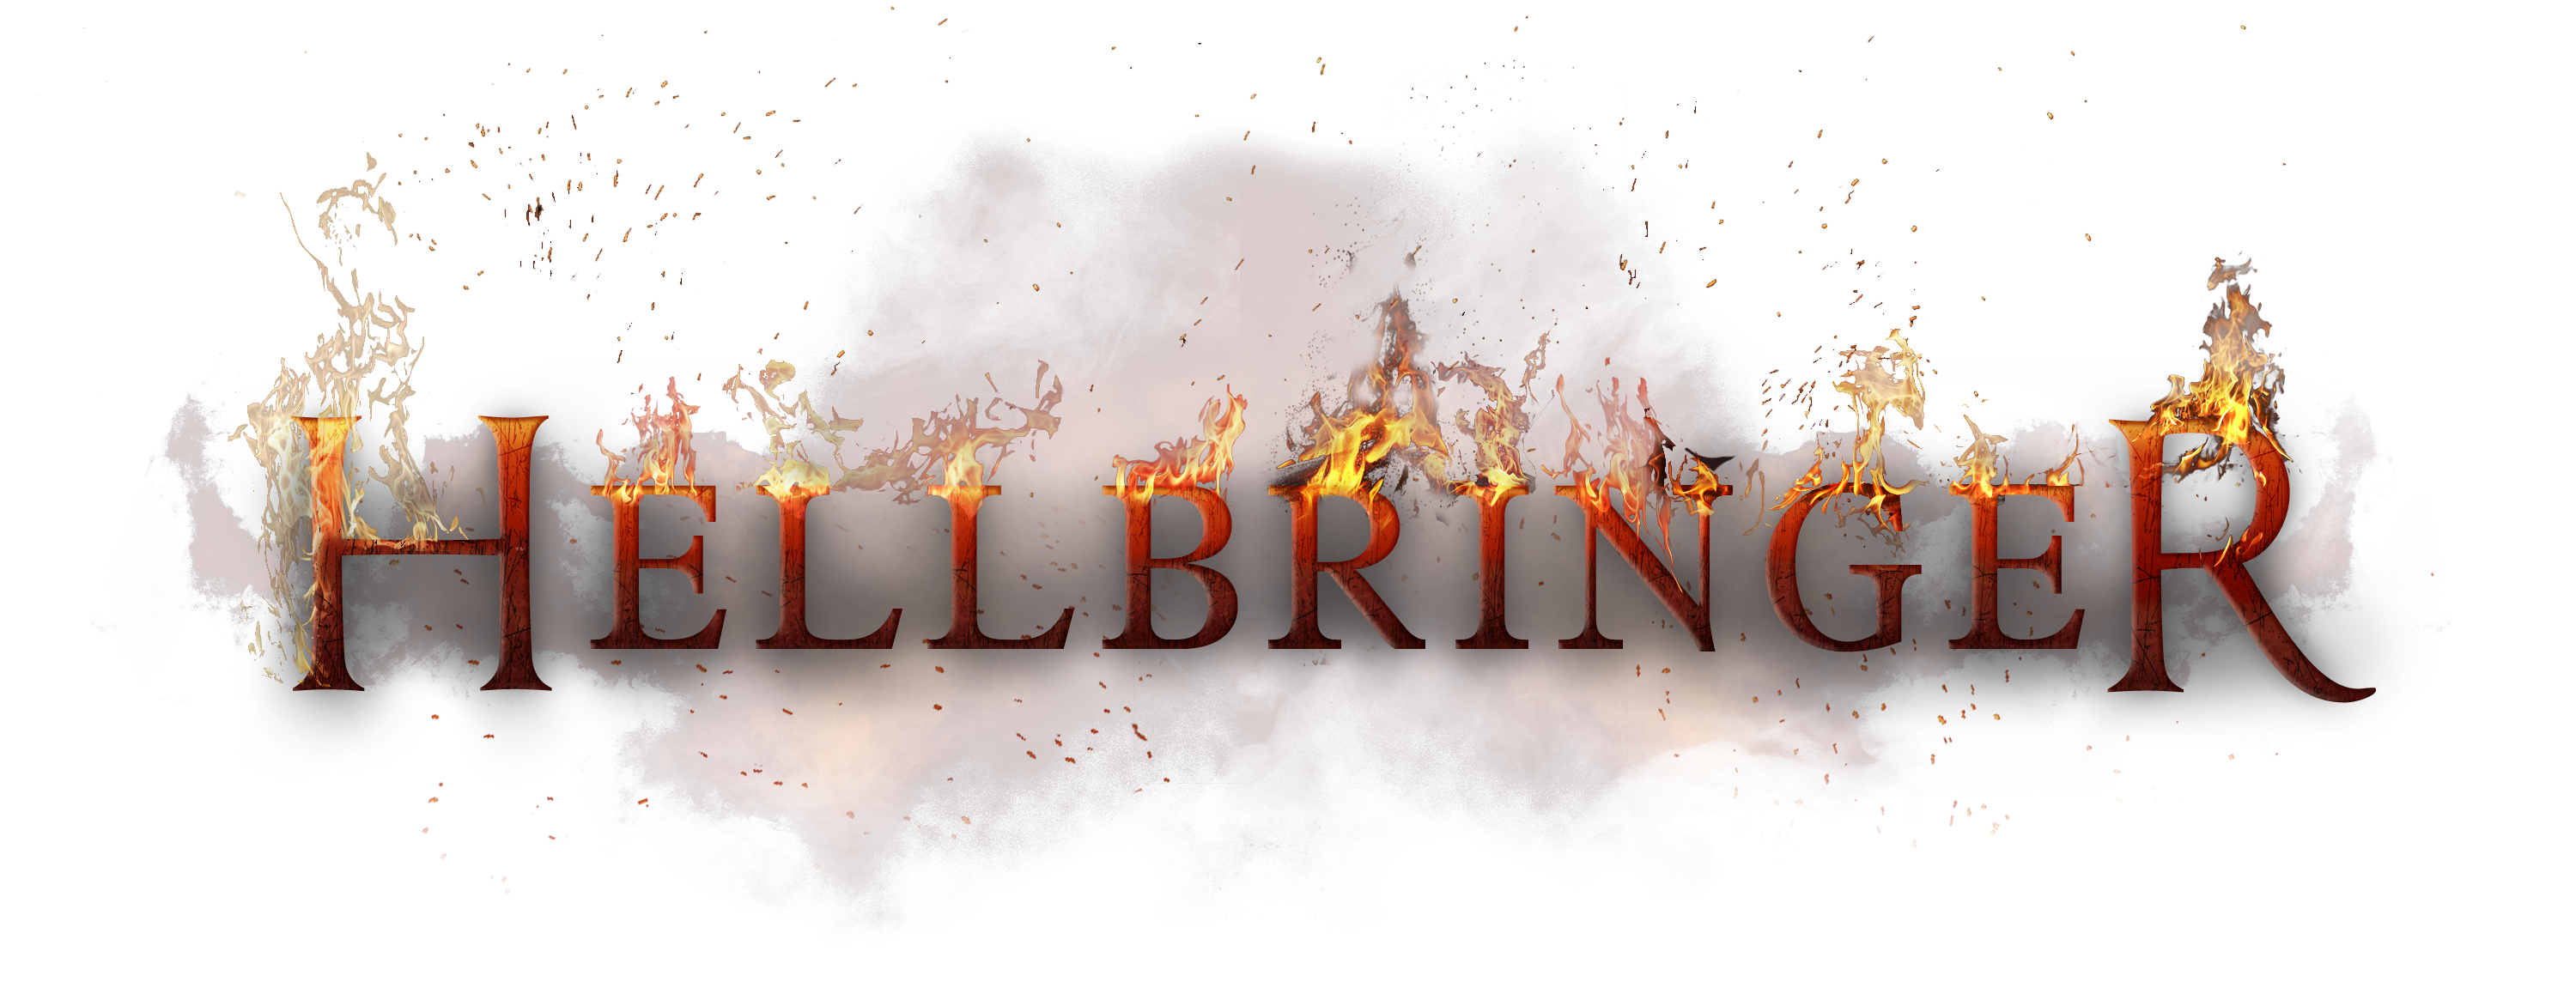 HELLBRINGER is an RPG card game (1-3 player) where you play as a hero venturing into the darkness of the tomb of a mighty demon.